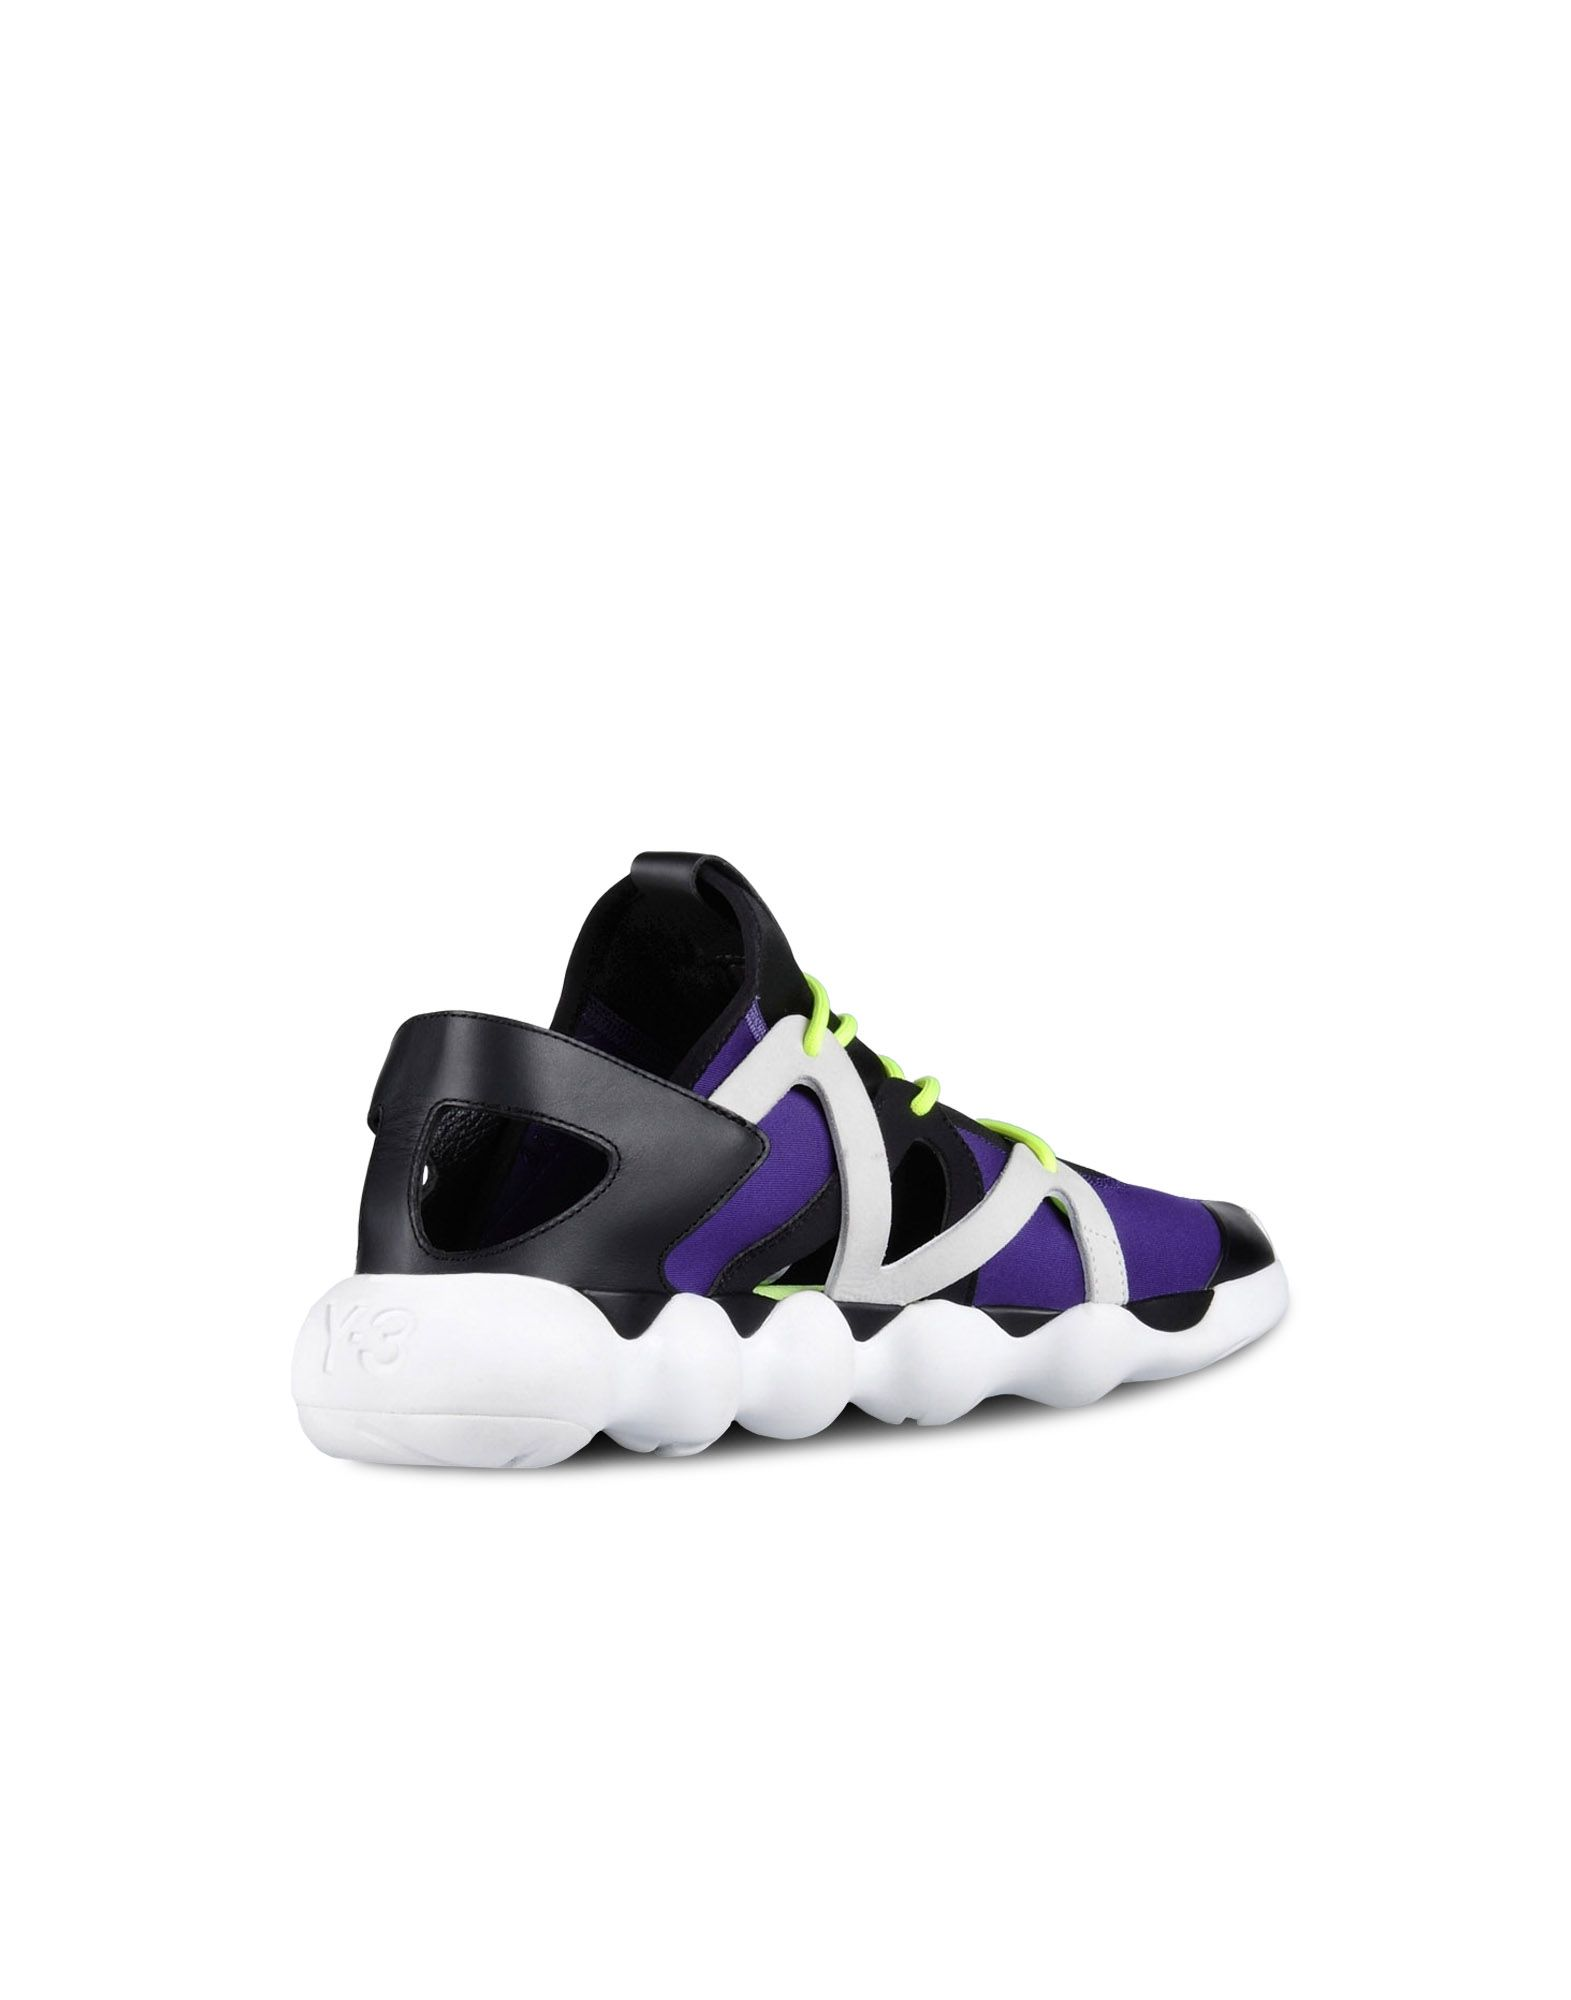 adidas y3 kyujo low